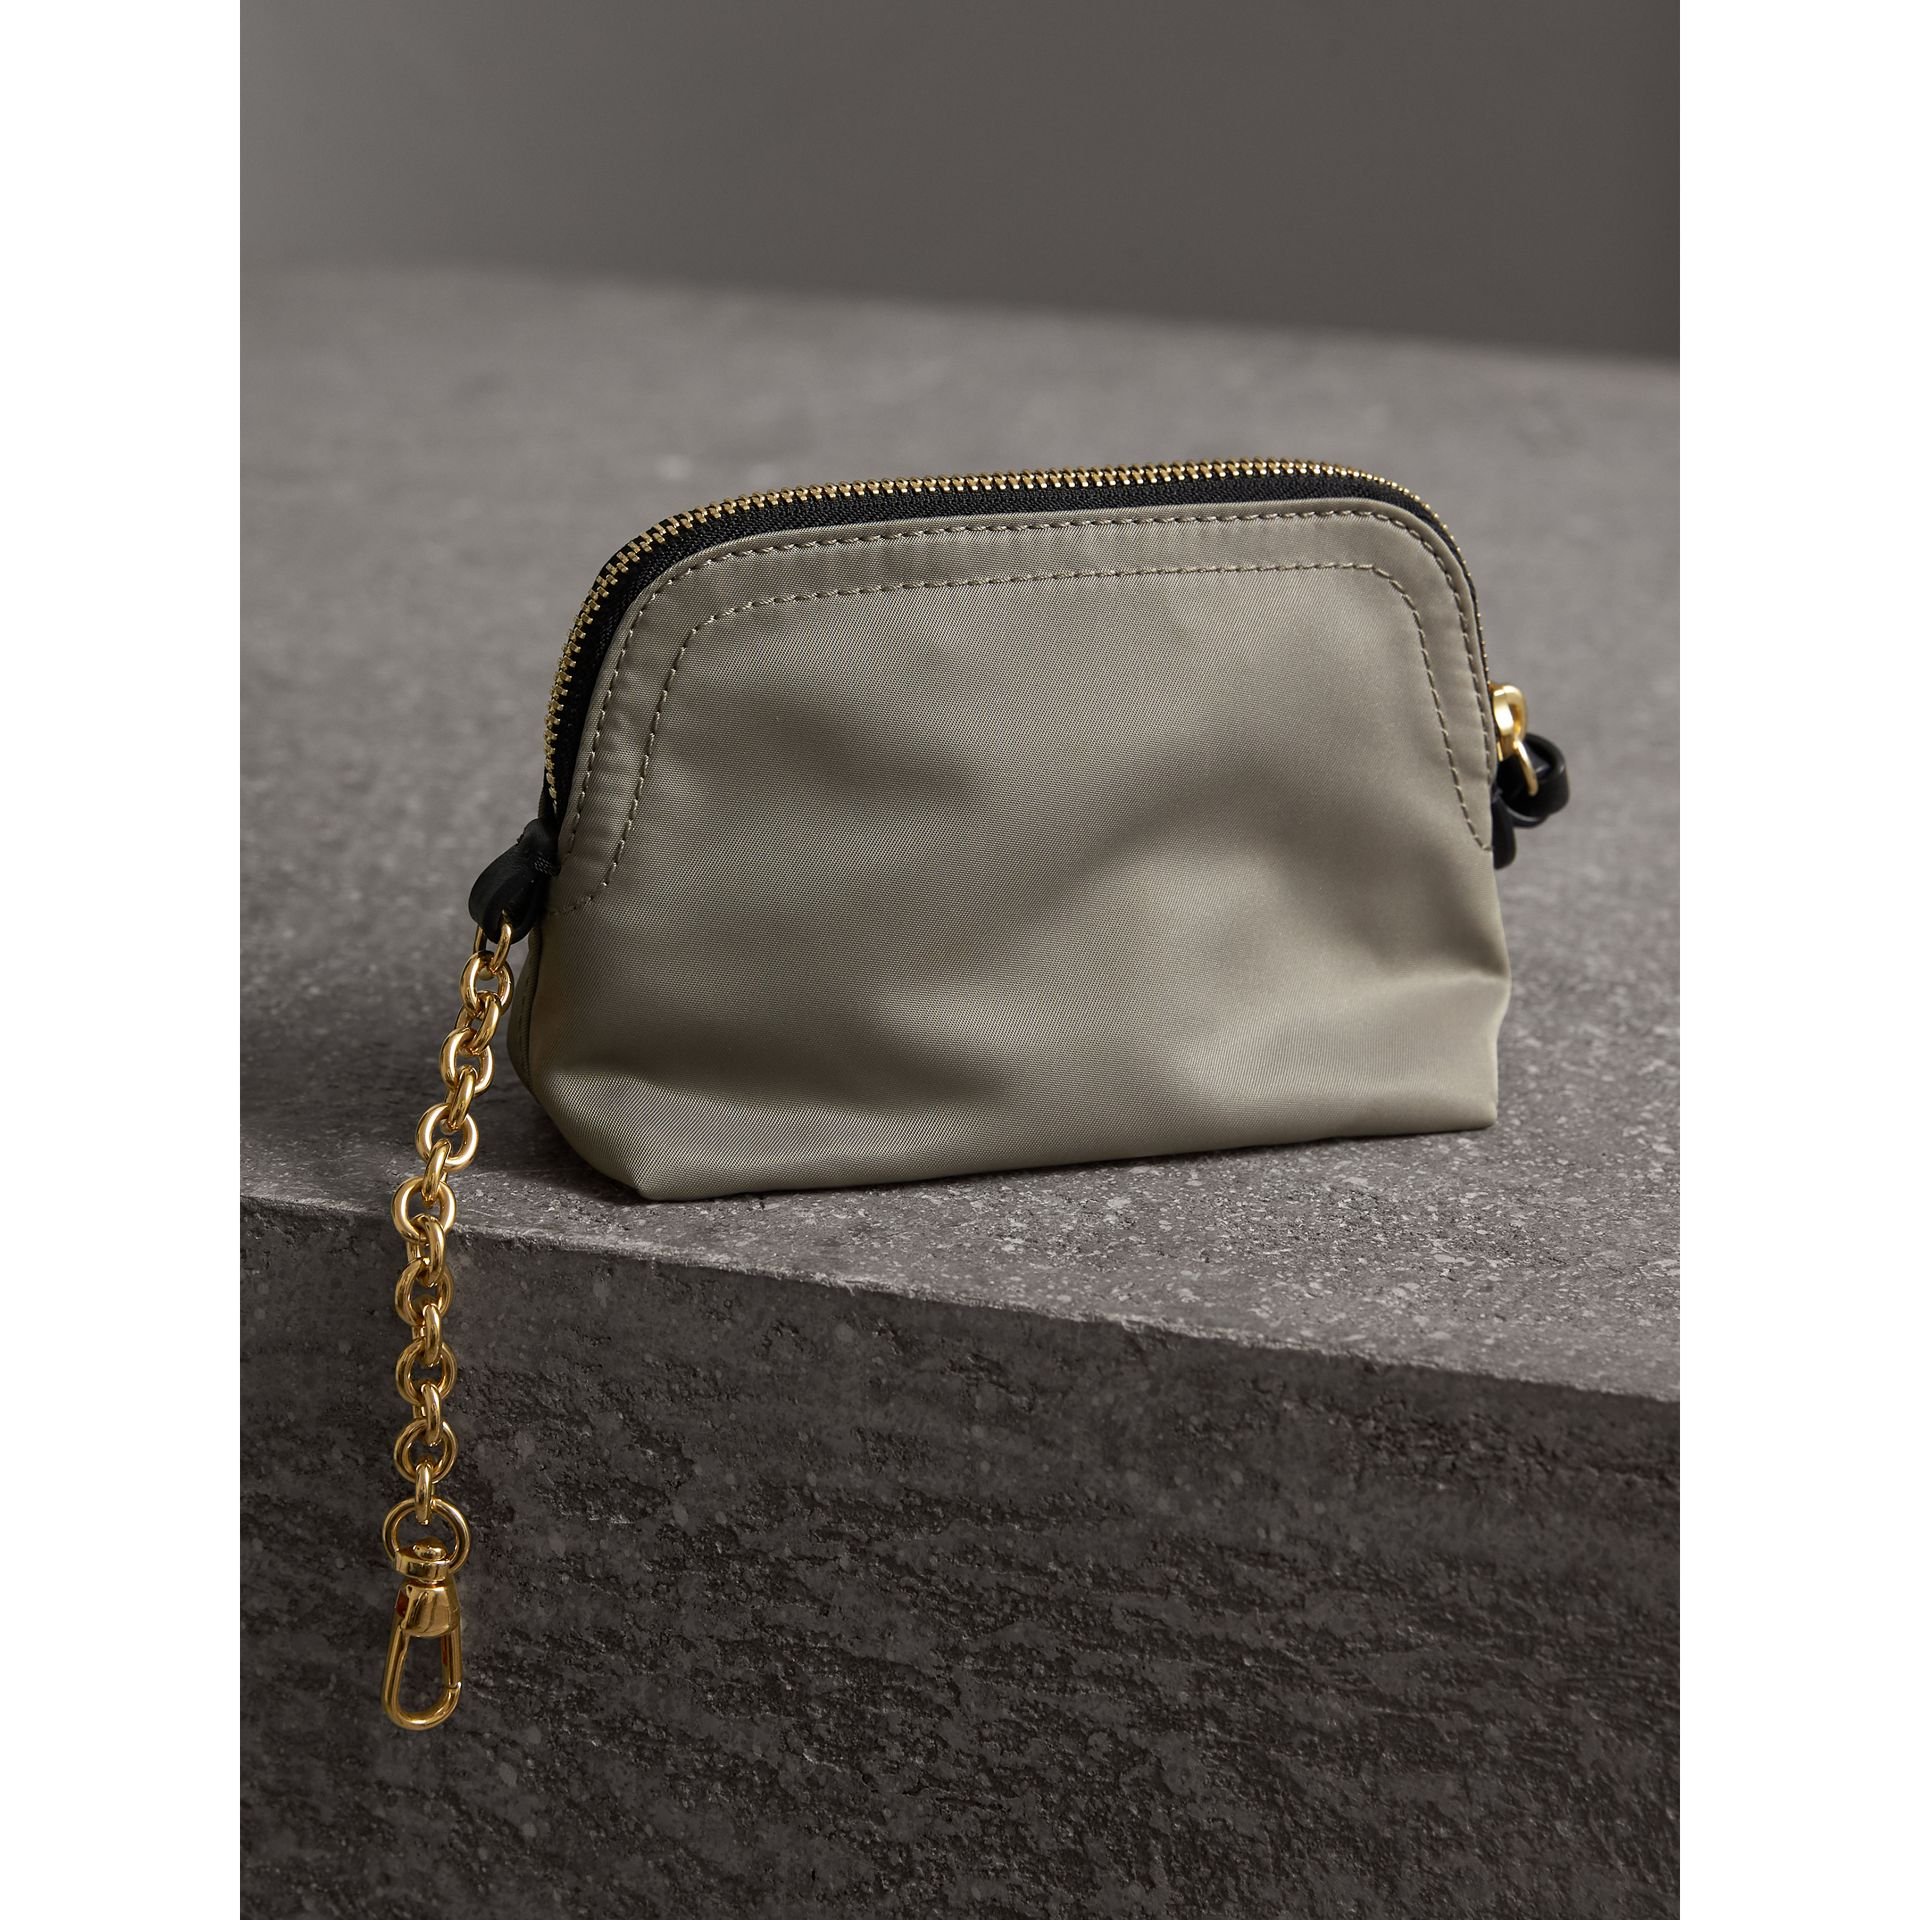 Petite pochette zippée en nylon technique (Gris Chardon) - Femme | Burberry - photo de la galerie 3